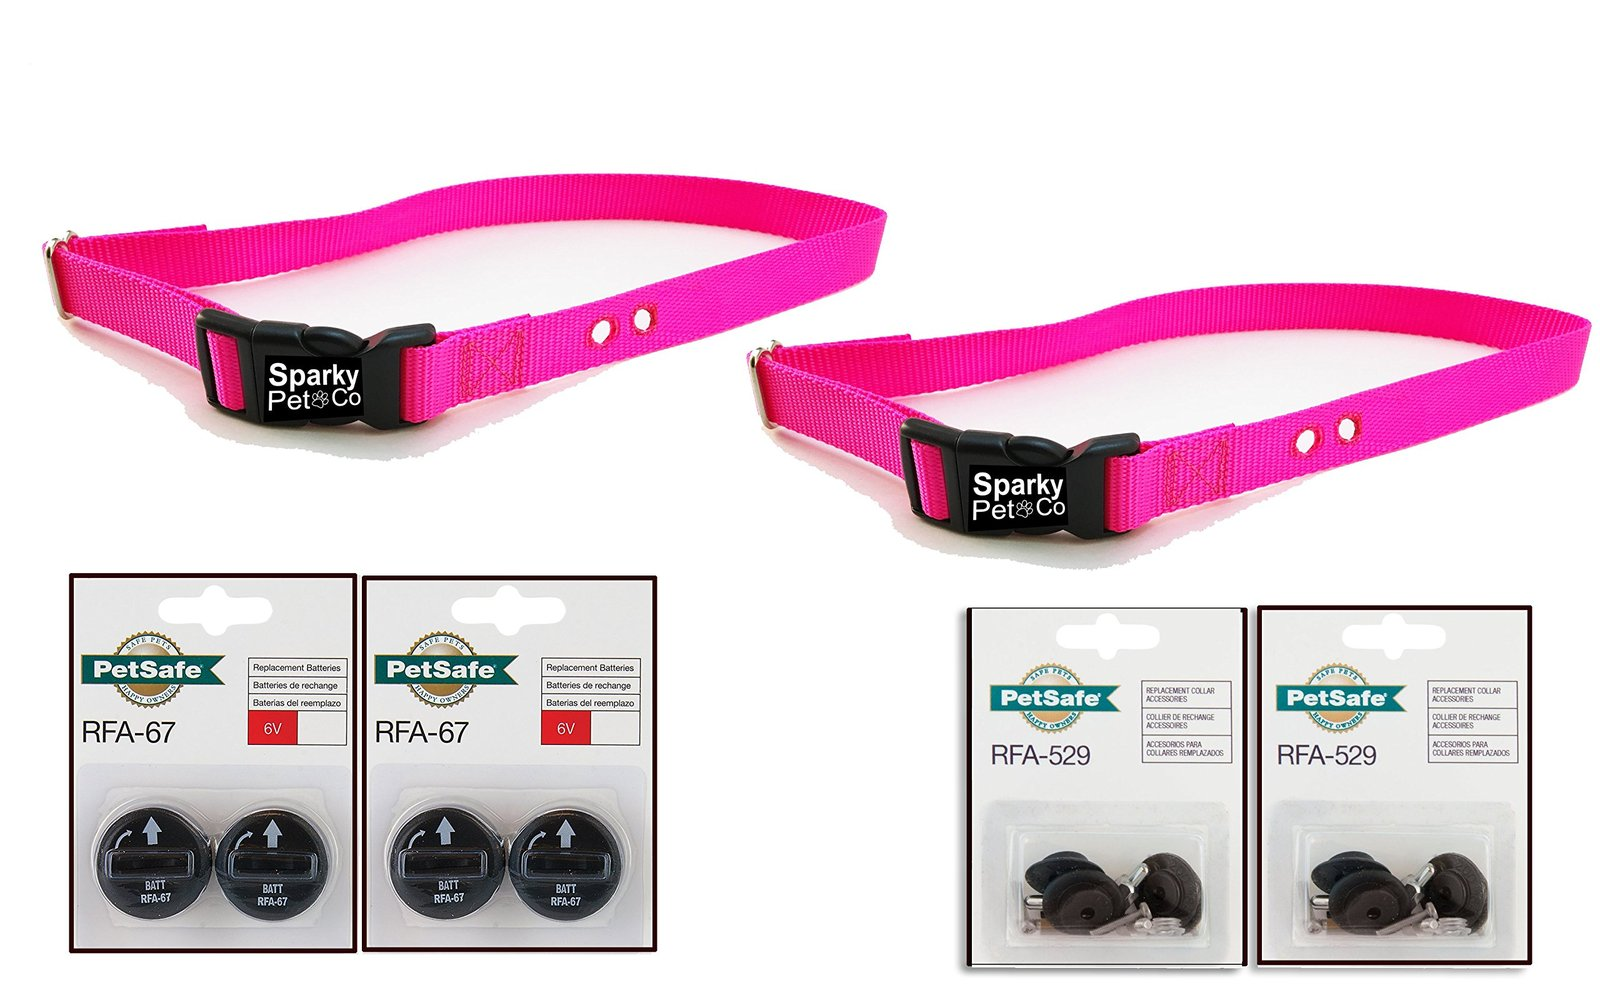 "Sparky PetCo 2 3/4"" Heavy Duty Neon Pink Dog Straps with 2 RFA 529 Kits & 4 R..."